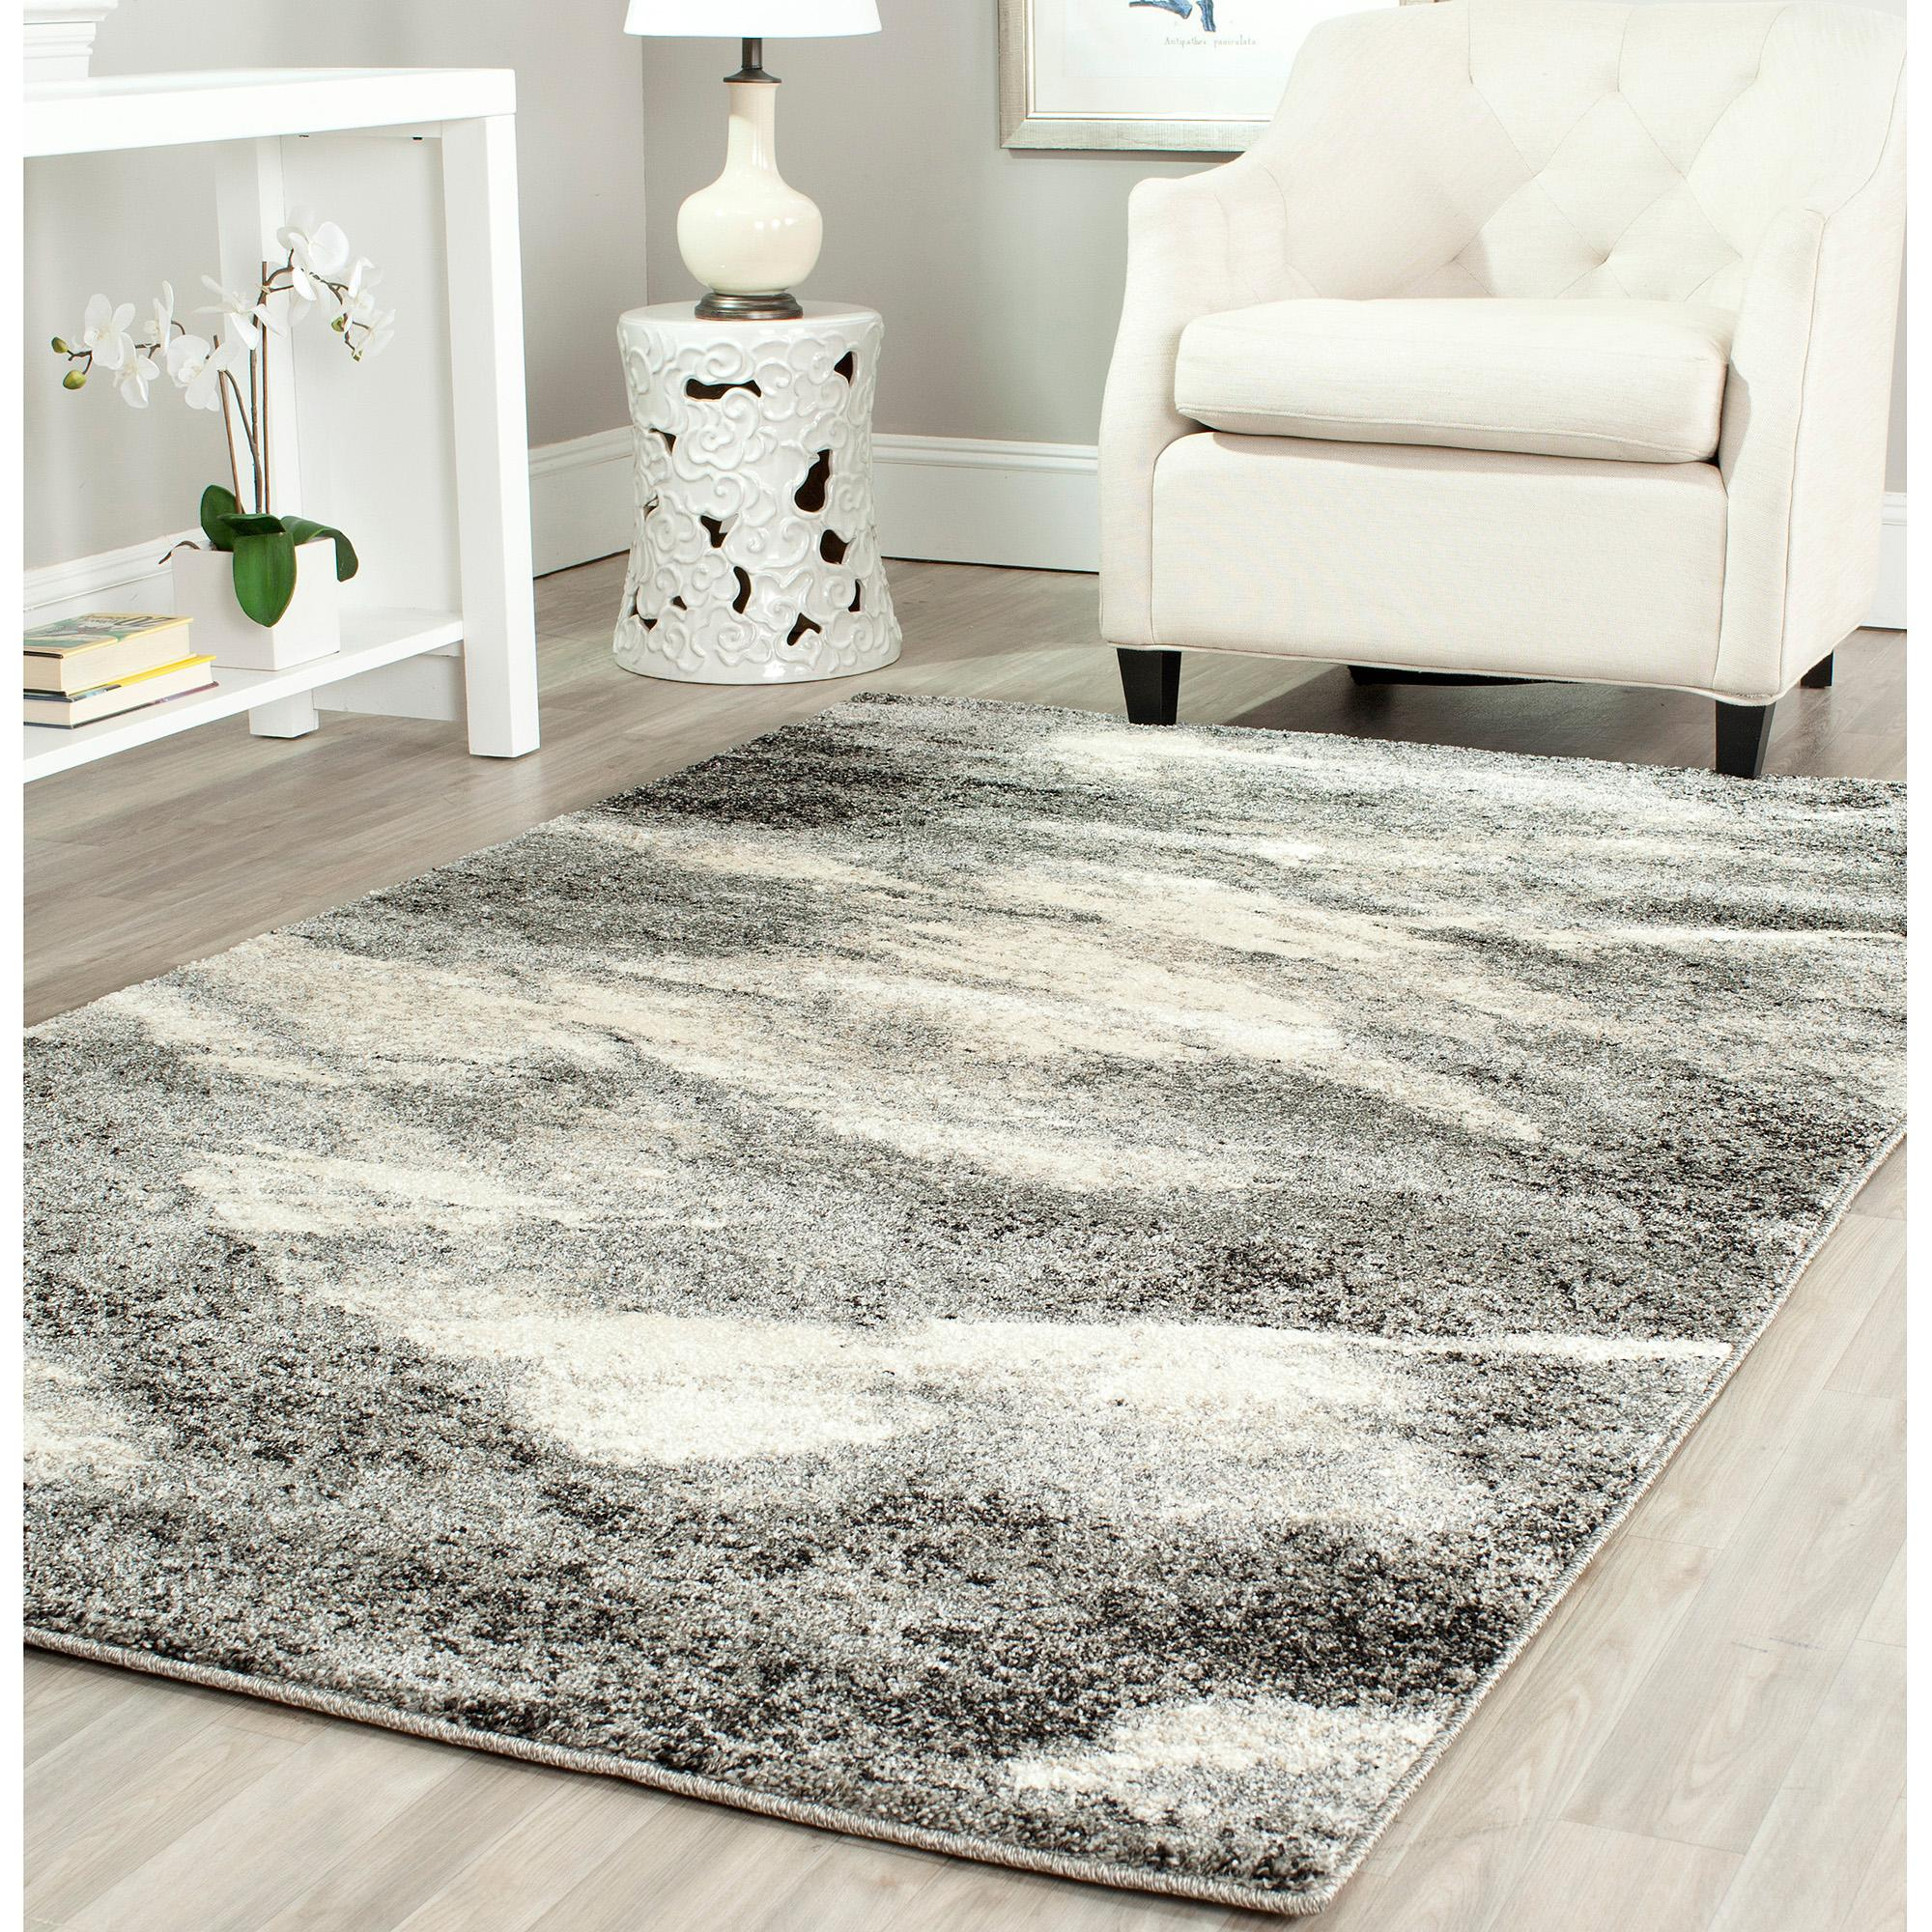 Damask Area Rug Black And White Roselawnlutheran